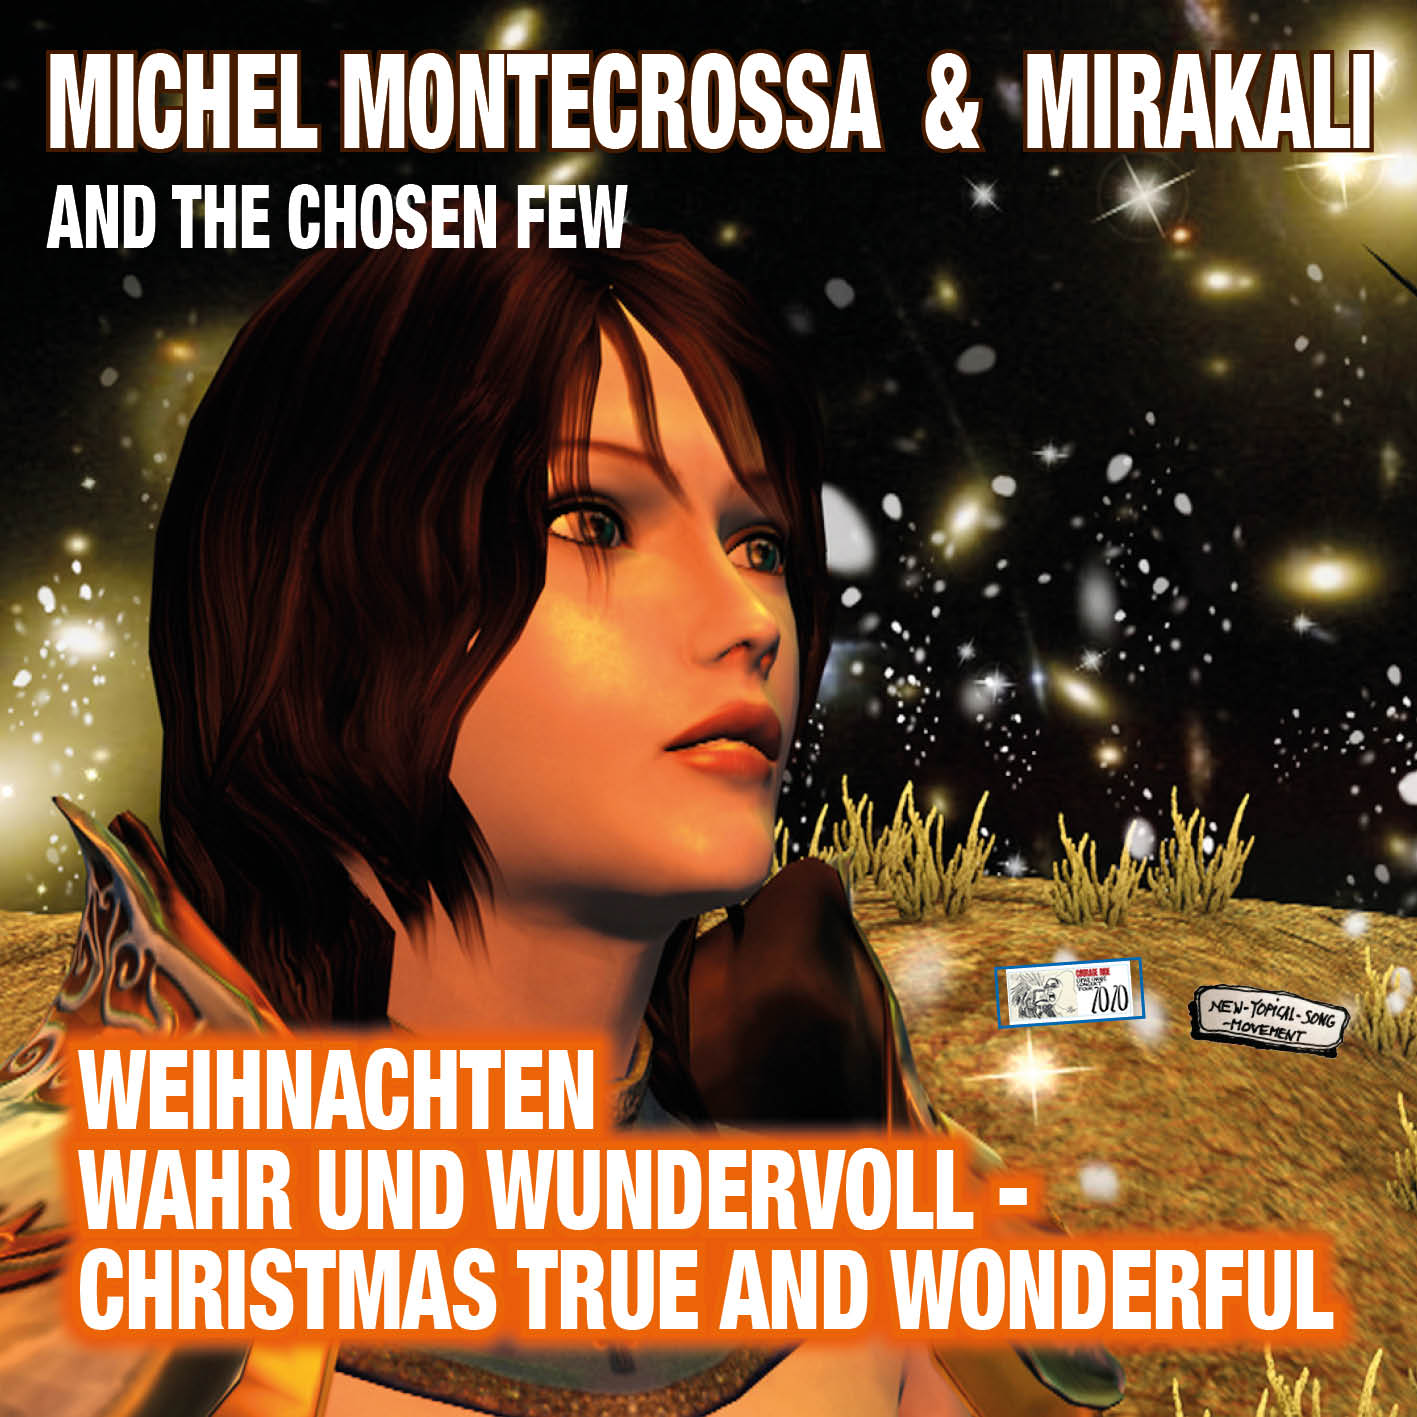 Weihnachten Wahr und Wundervoll - Christmas True And Wonderful